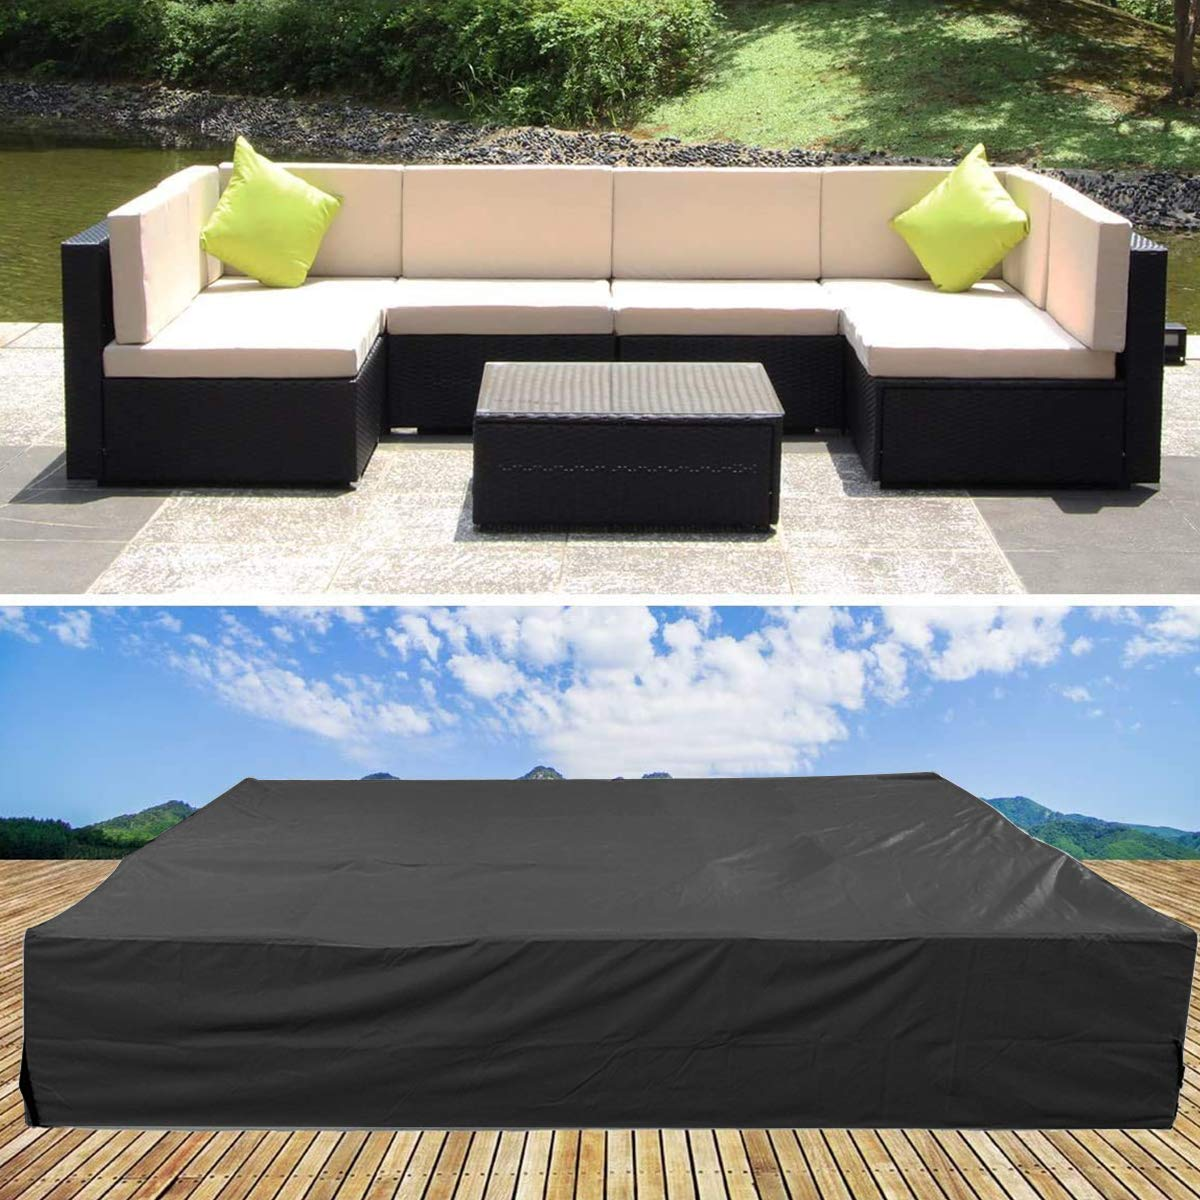 U Max Furniture Set Cover Premium Outdoor Furniture Cover Durable And Water Resistant Patio Table Chair Set Fabric Buy Online In Dominica At Dominica Desertcart Com Productid 203046374